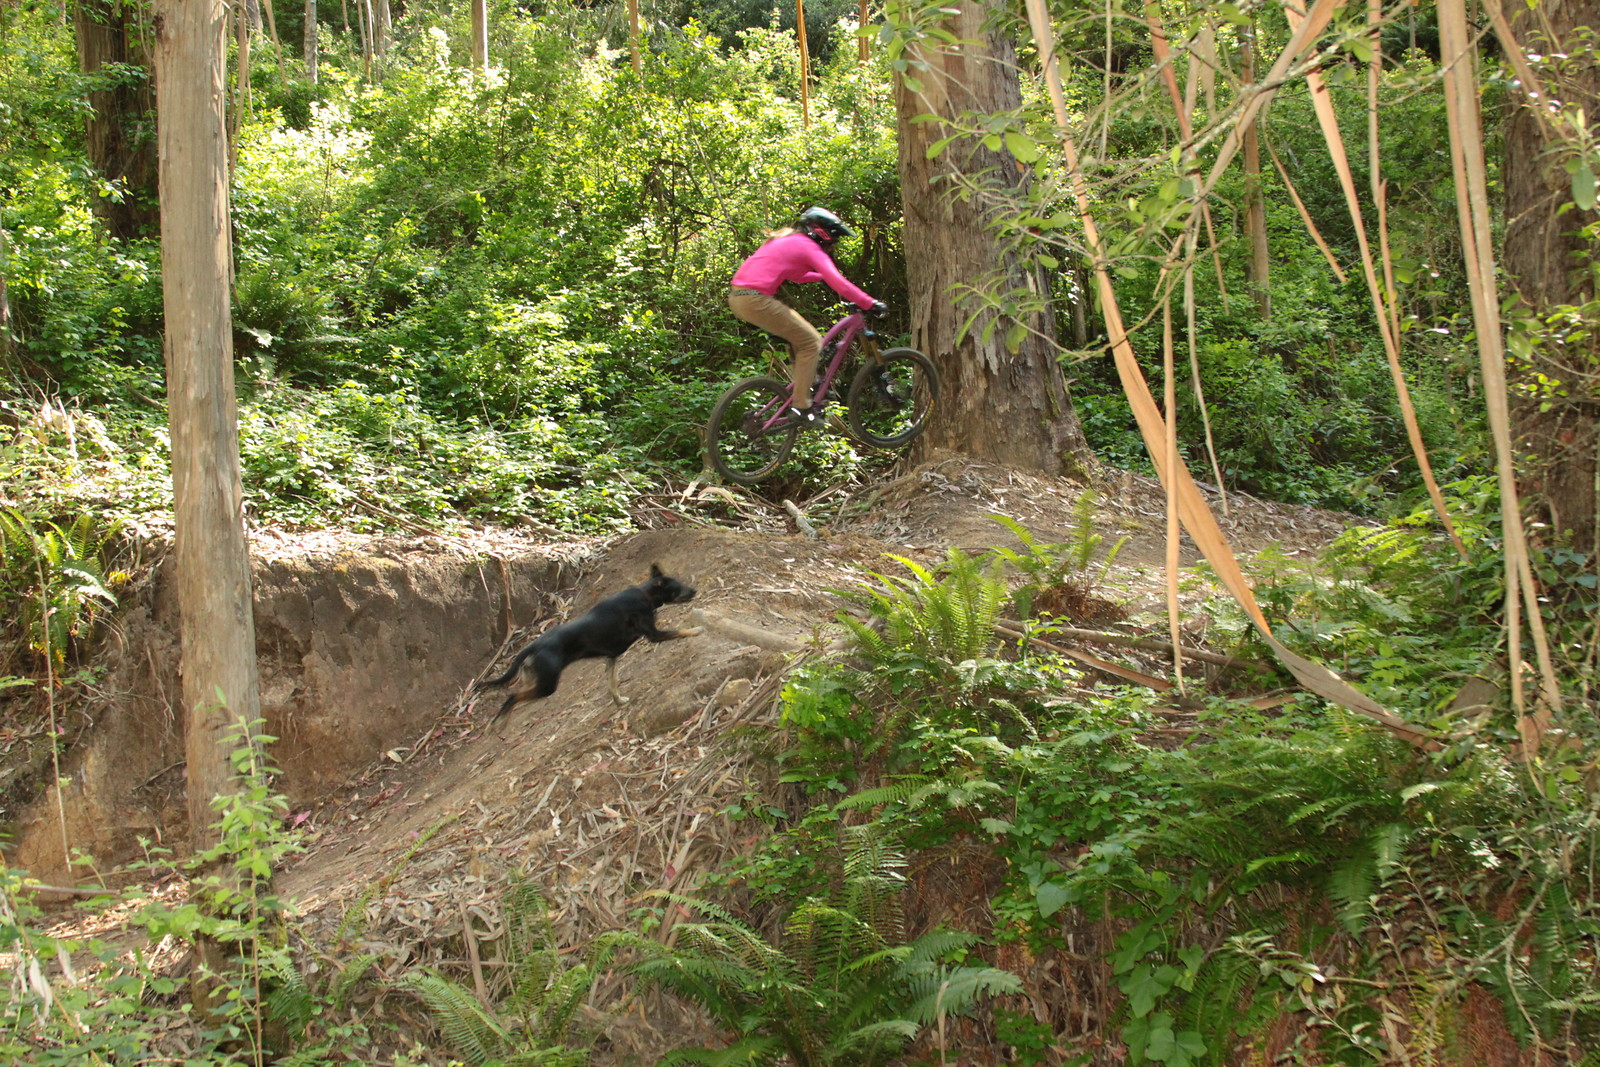 Stepping it-Up with Sarah-Dog - lindsay - Mountain Biking Pictures - Vital MTB